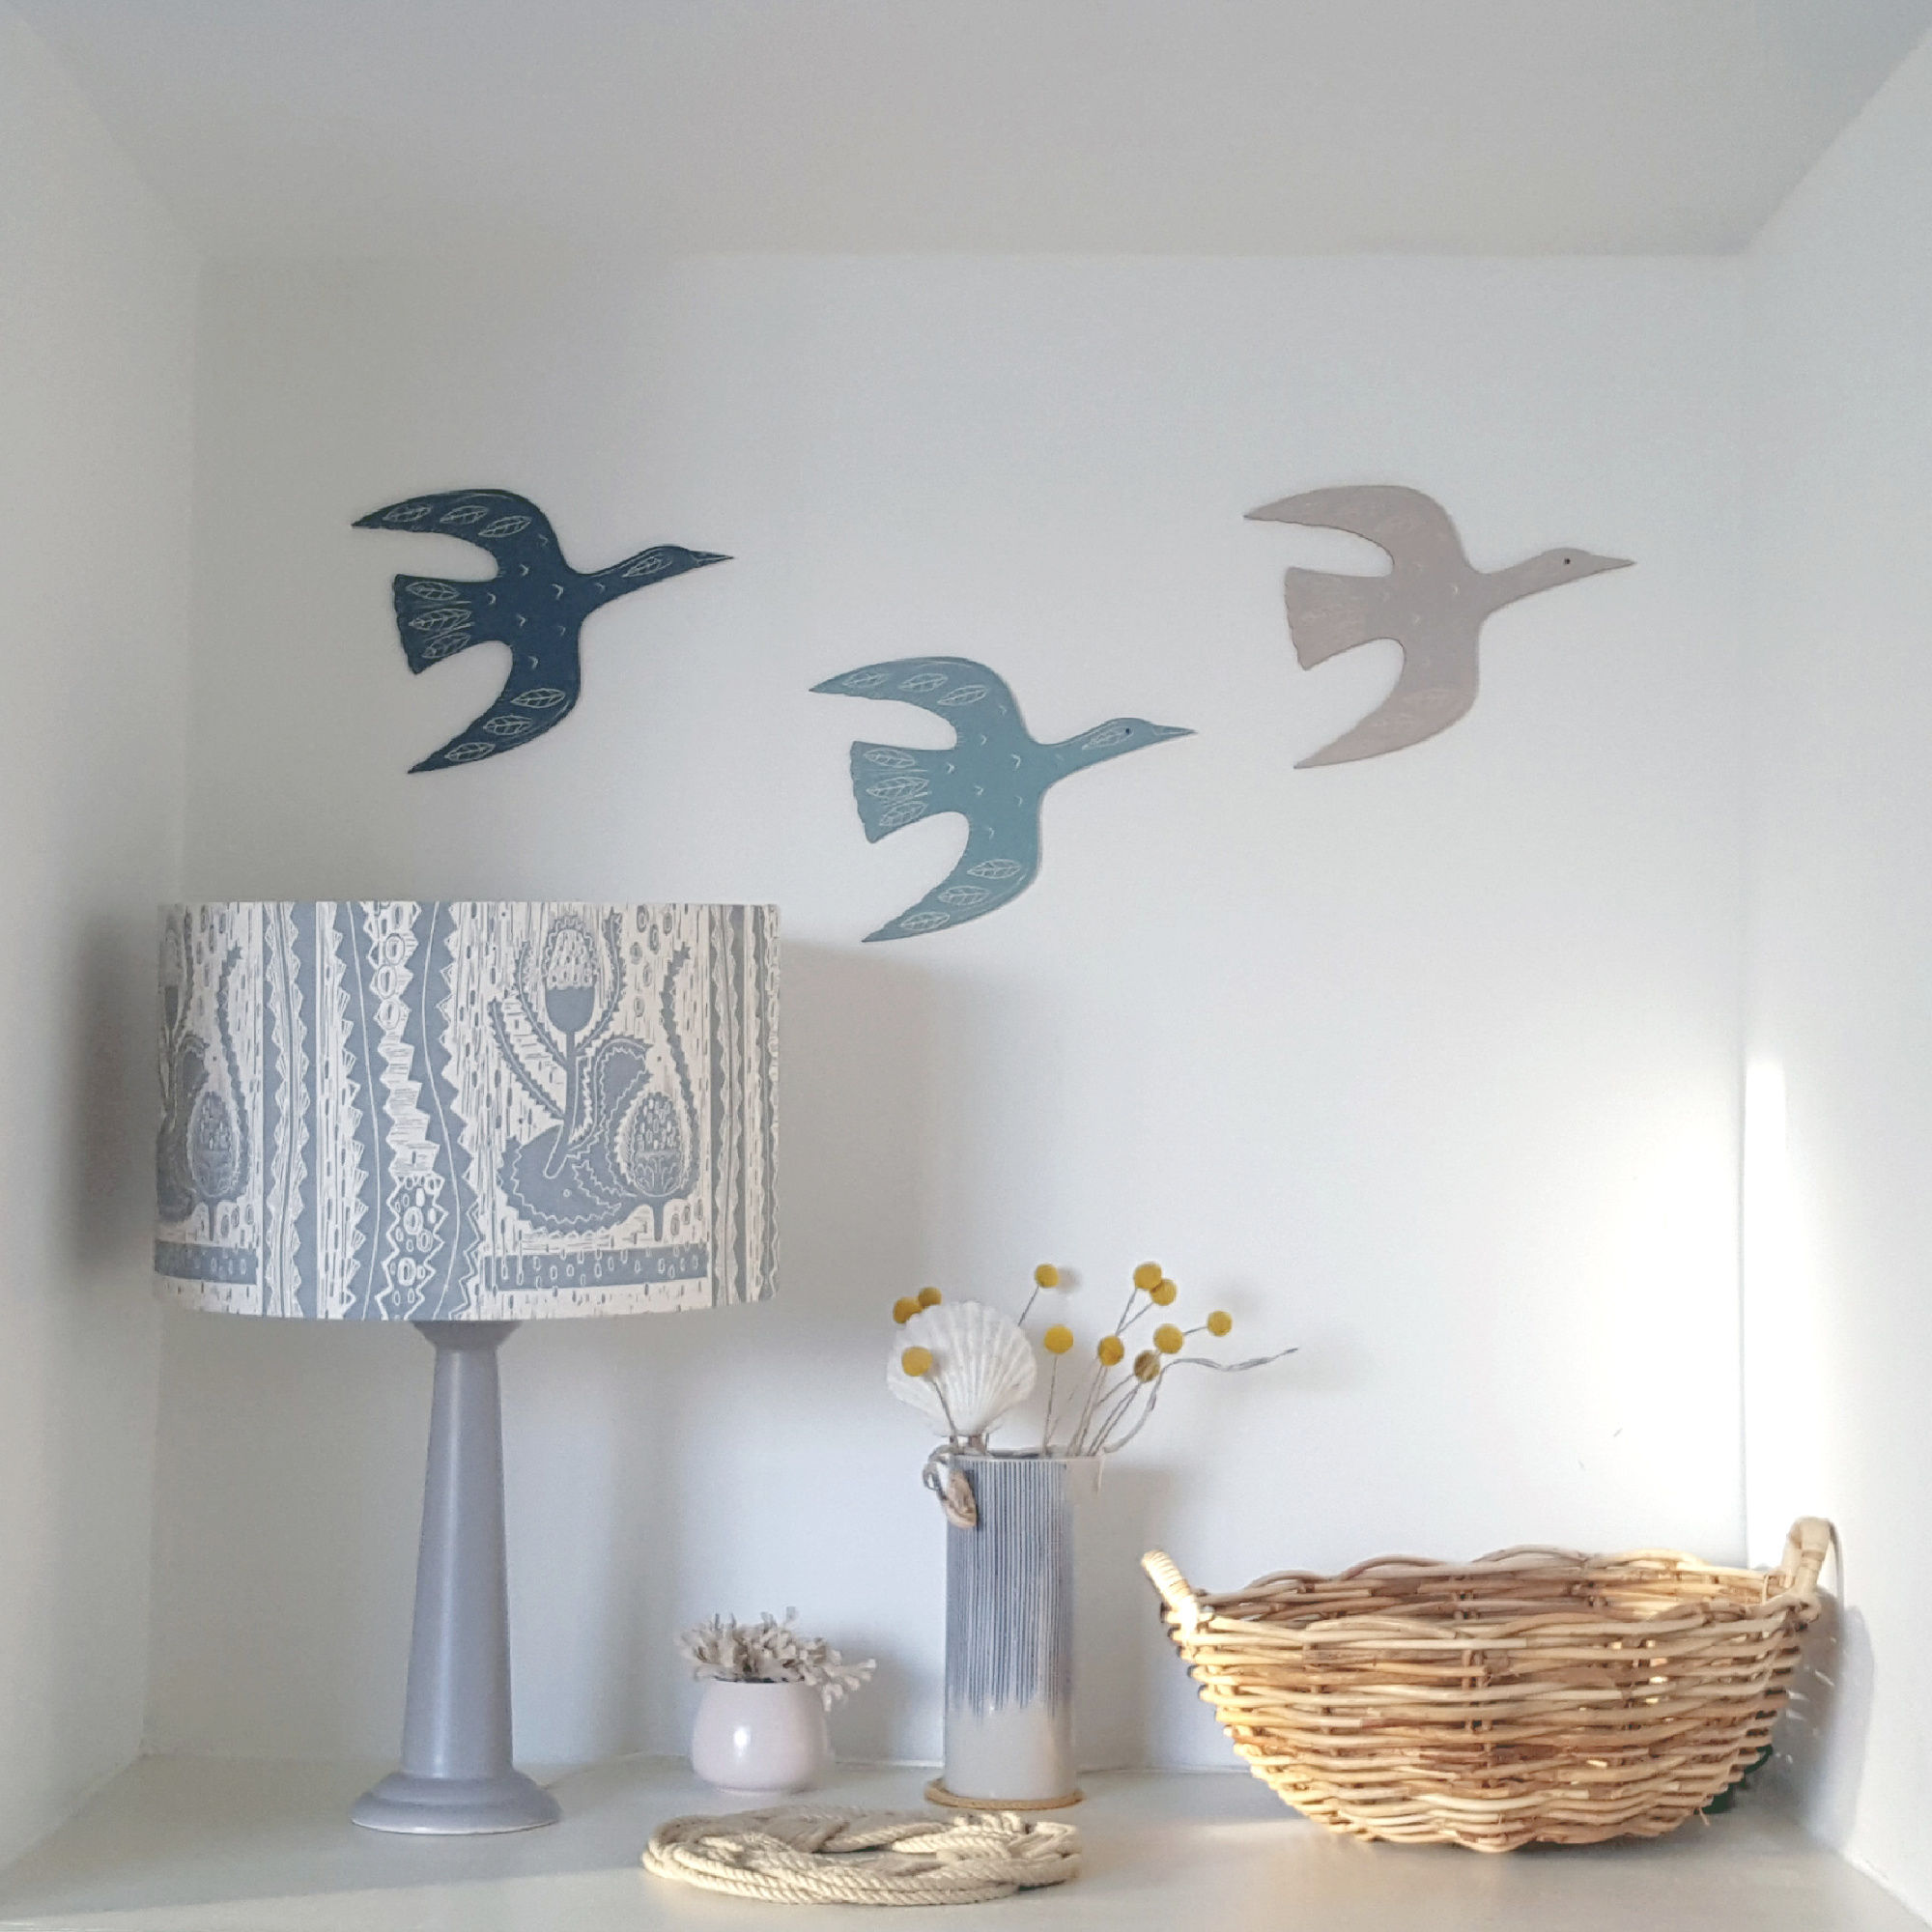 Wall Mounted Goose by Kate Millbank